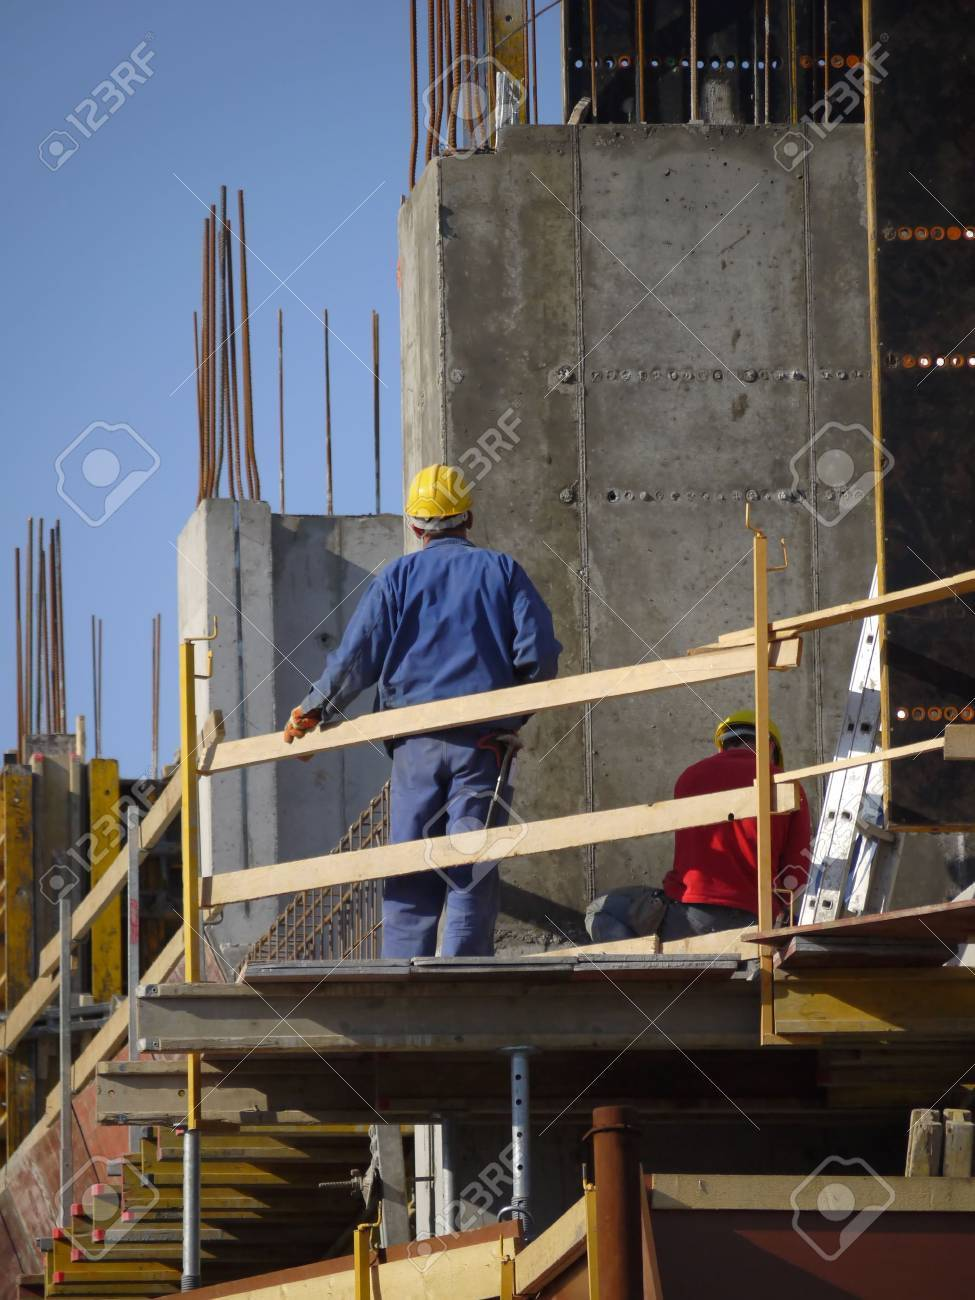 Construction workers working on construction platform with formwork Stock Photo - 4771529